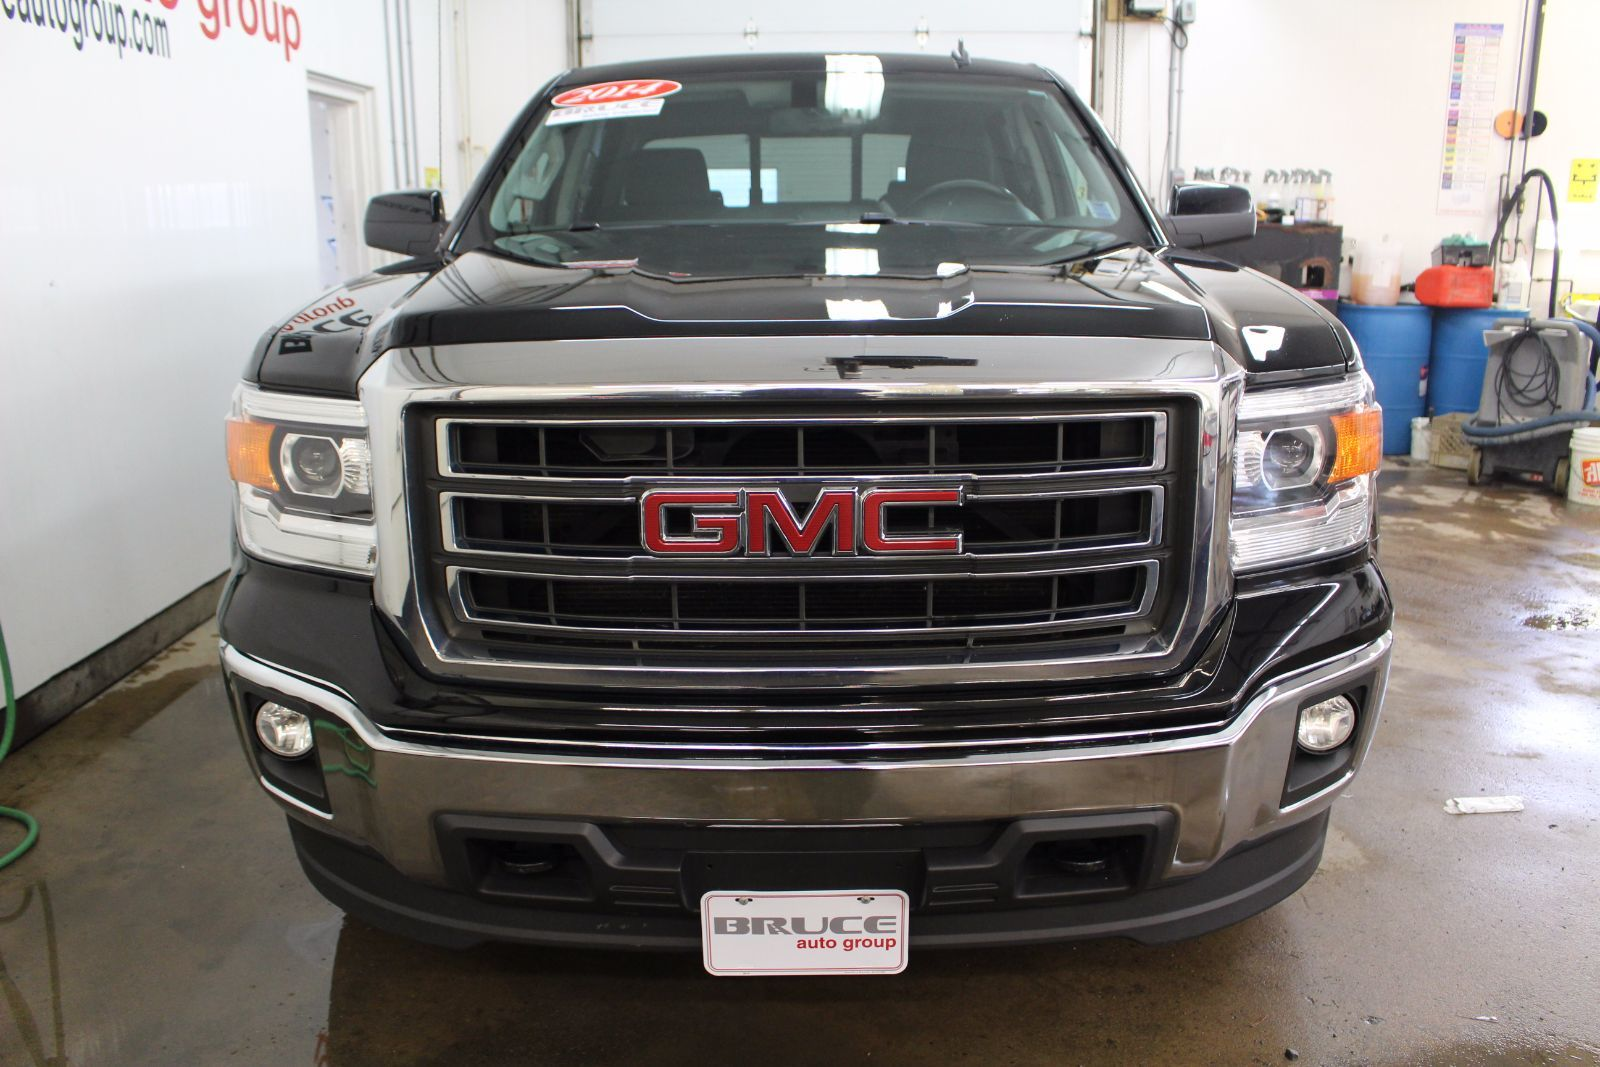 used 2014 gmc sierra 1500 sle 5 3l 8 cyl automatic 4x4 crew cab in middleton g17454a. Black Bedroom Furniture Sets. Home Design Ideas